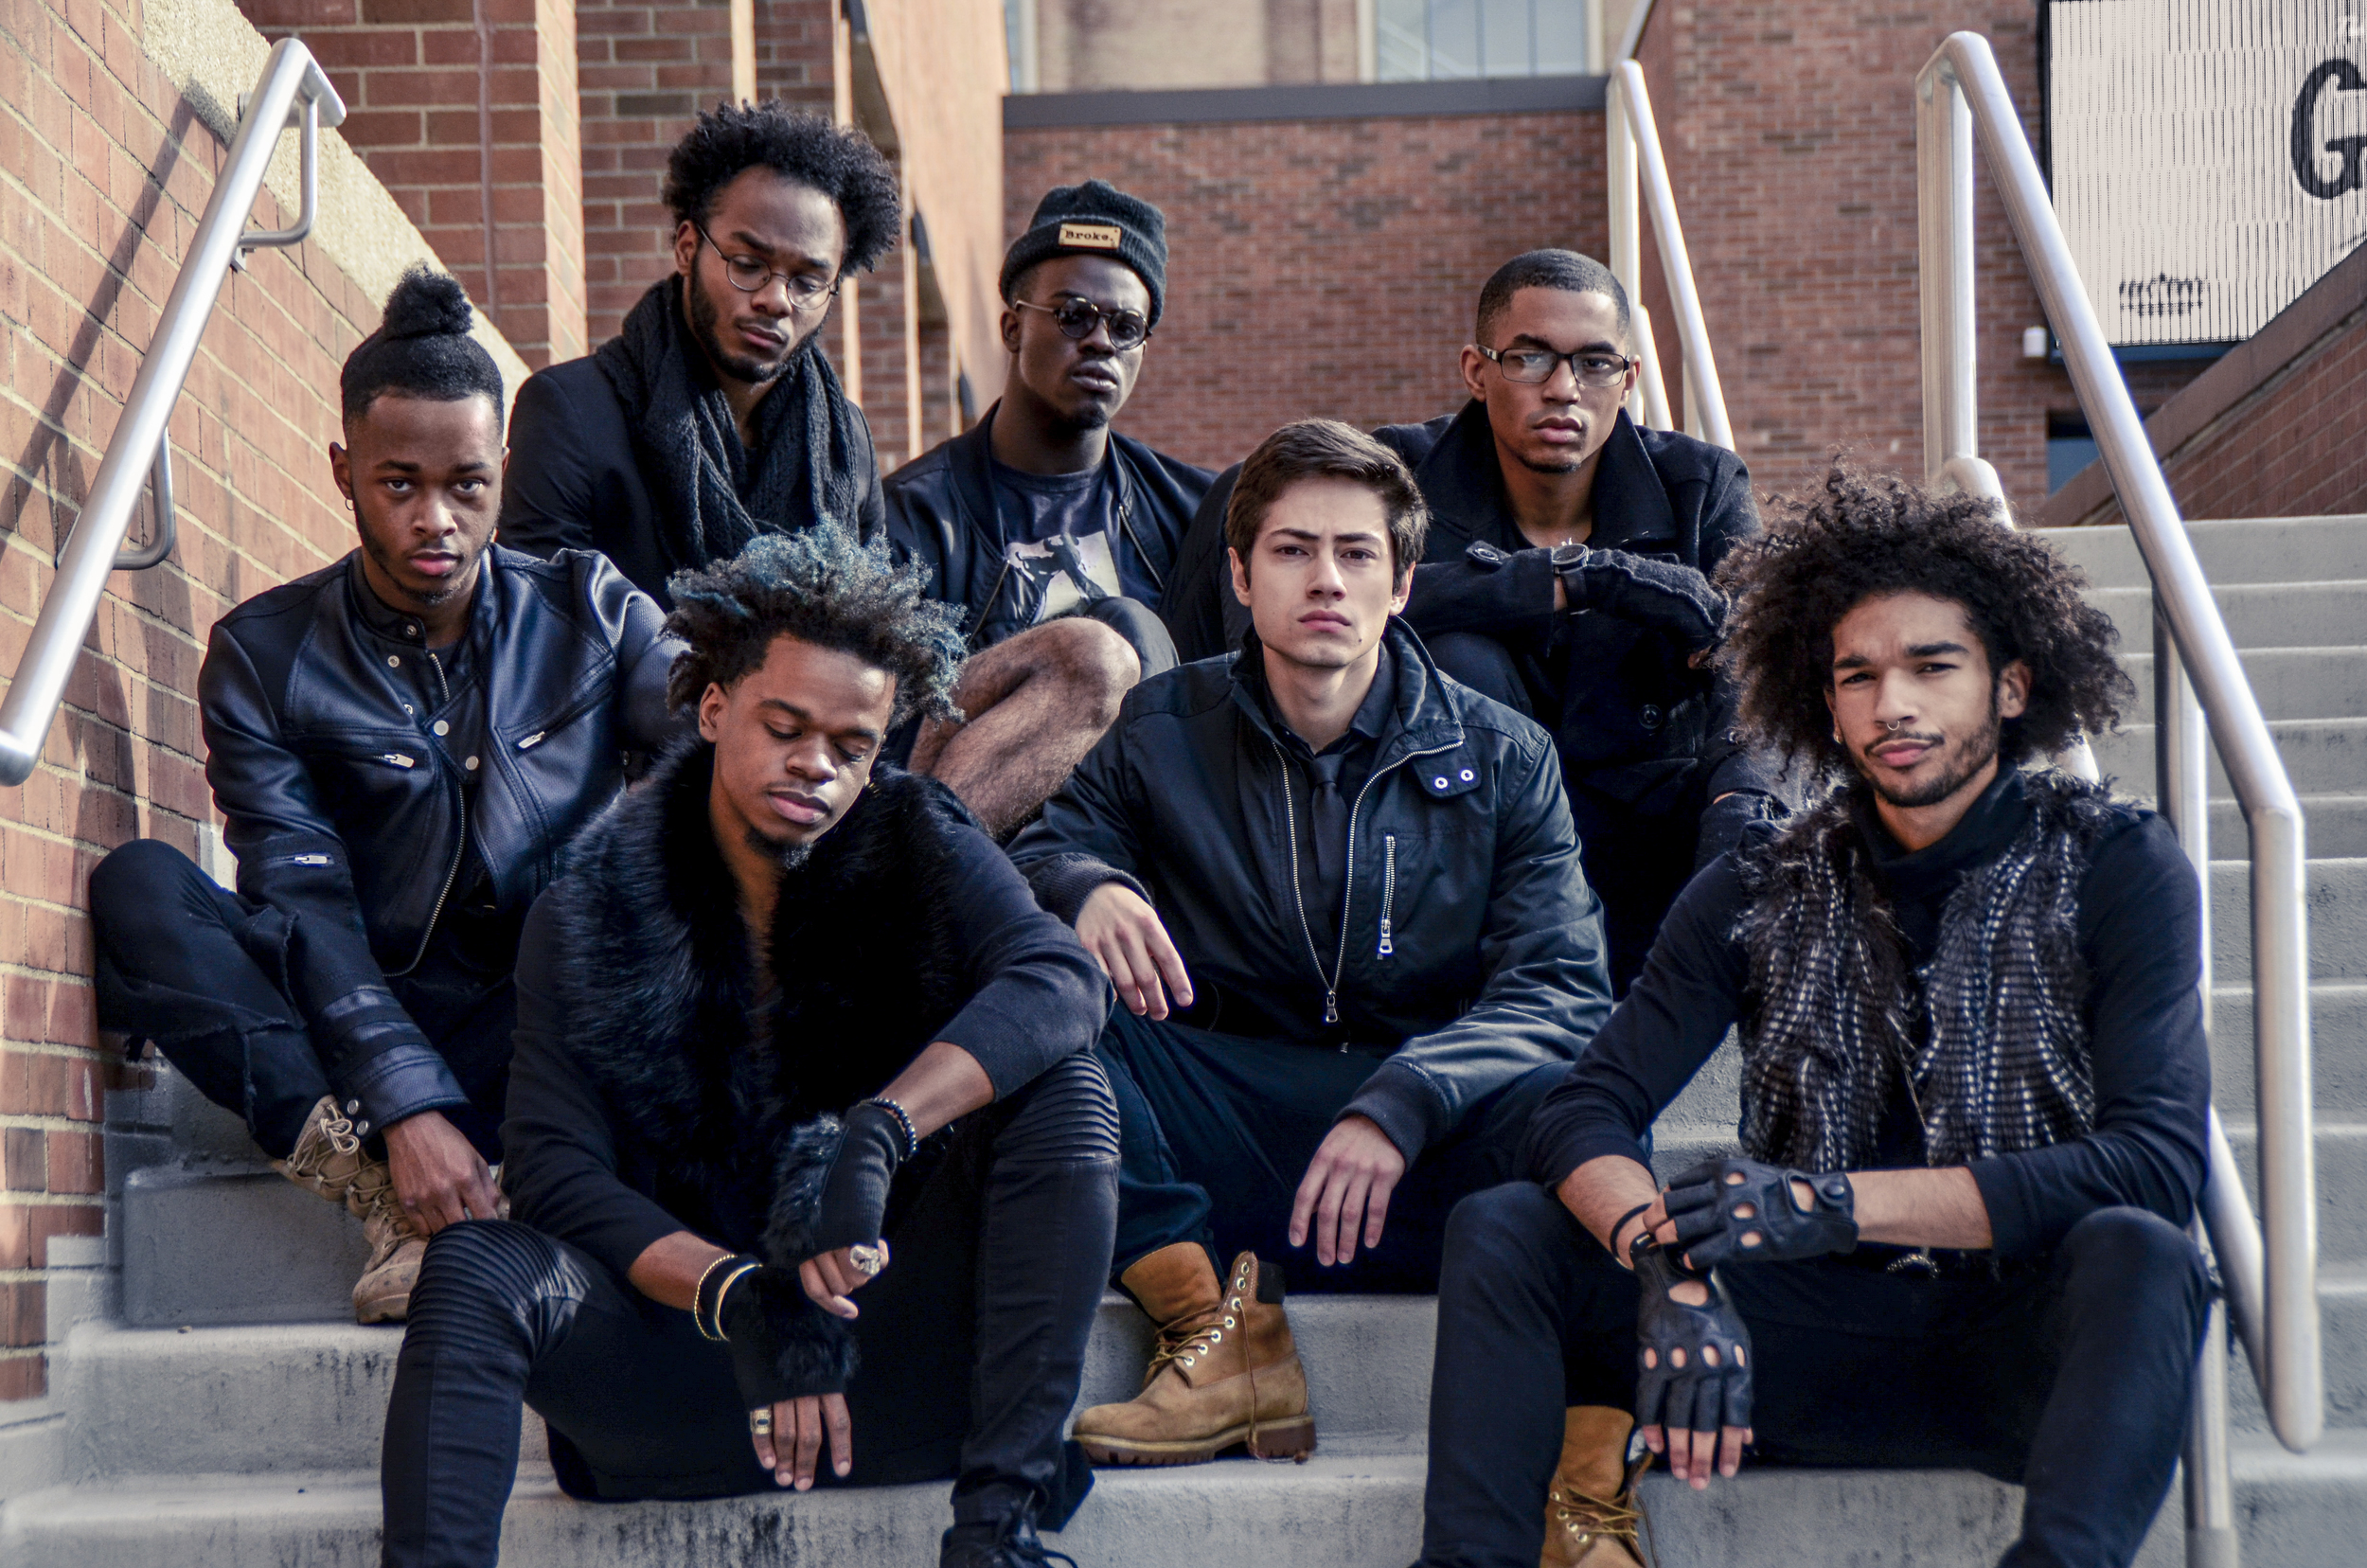 December 2015 - Tre Planes, Austin Coats, Jowan Cole, Courion Williams, Isaac Korb, Trevor Lee, and yours truly.